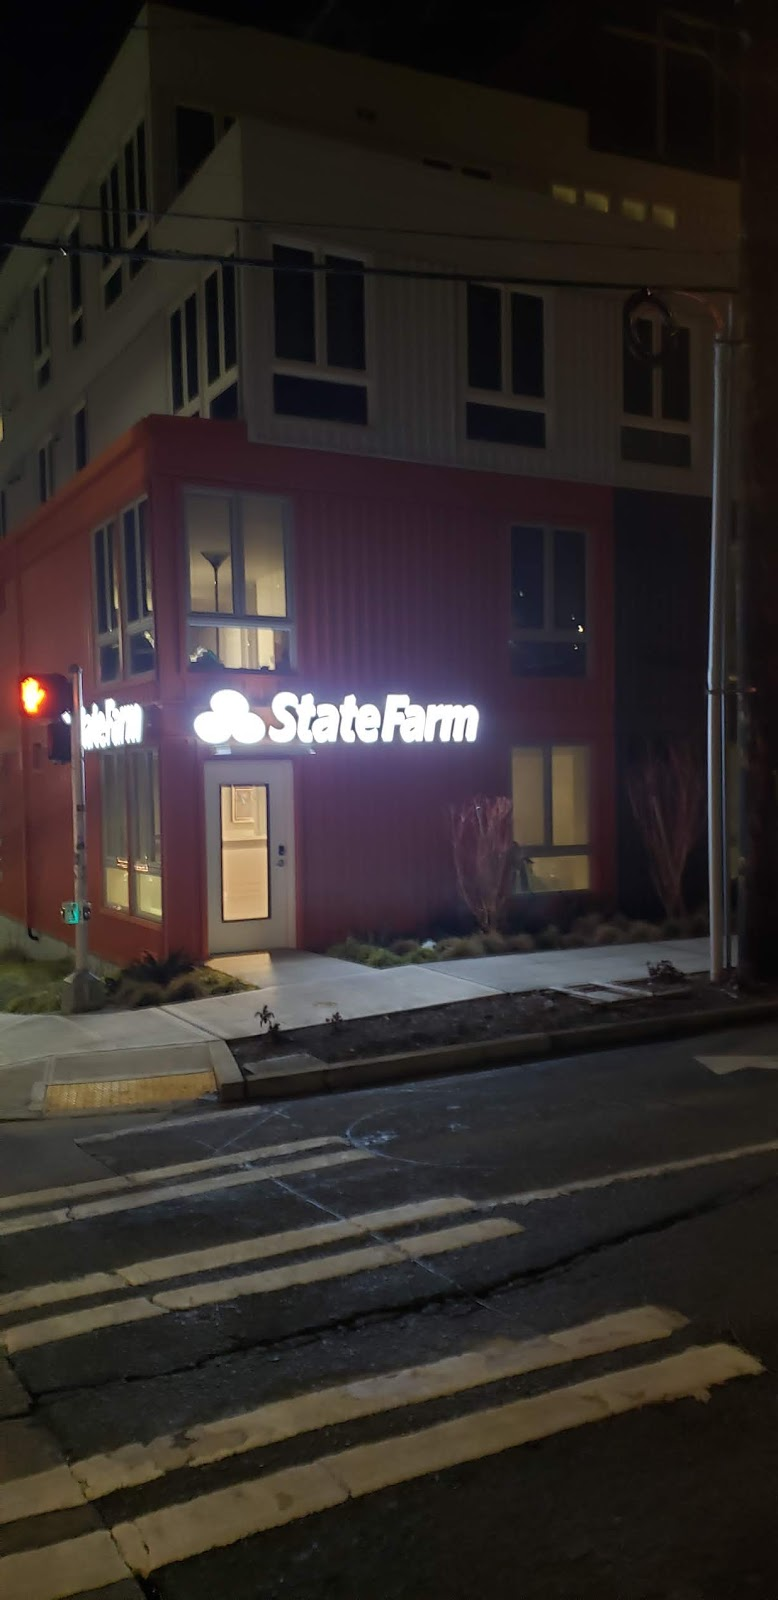 State Farm | insurance agency | 15th Ave W, Seattle, WA 98119, USA